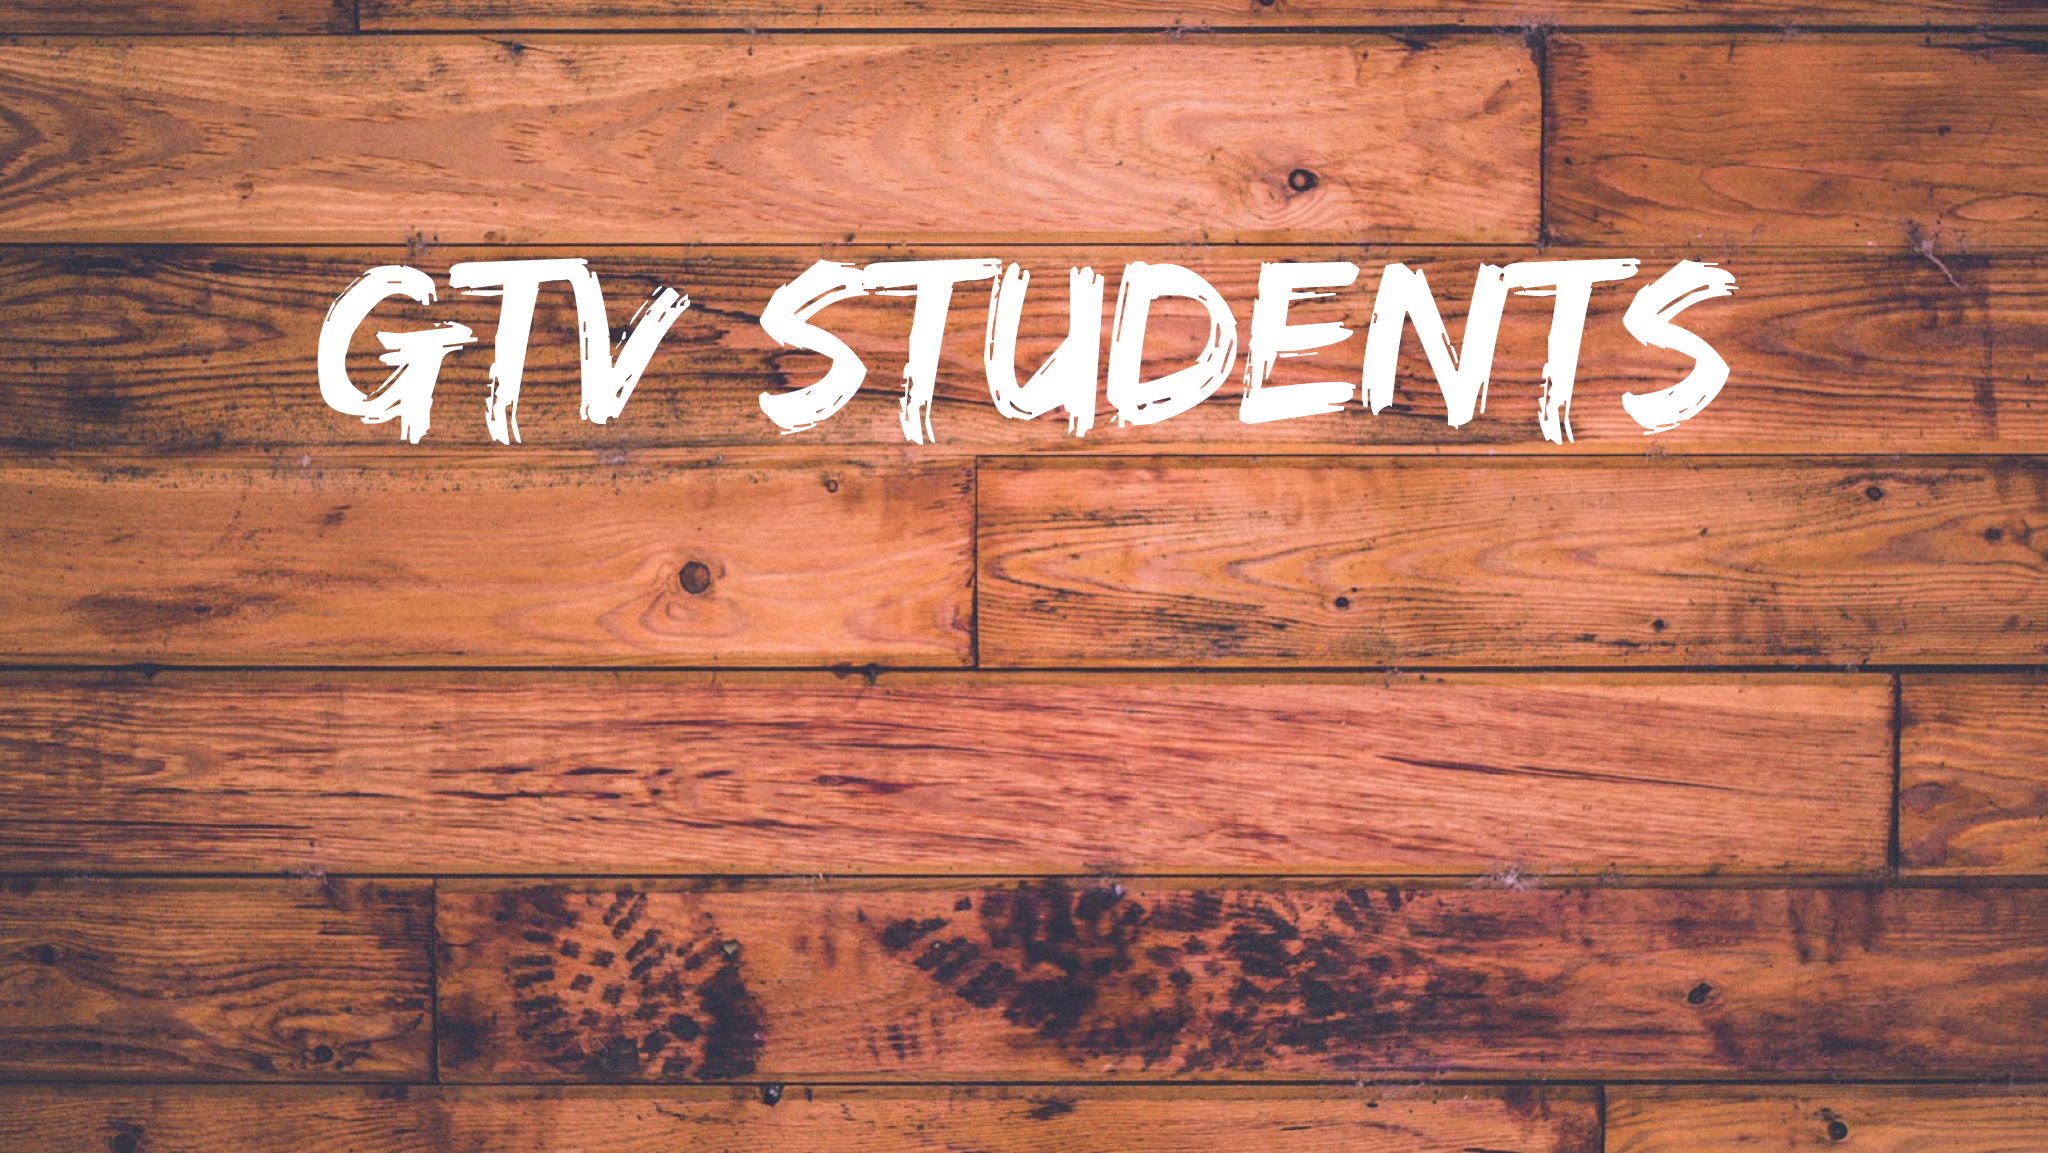 Click for more information about our Gateway Students ministry!